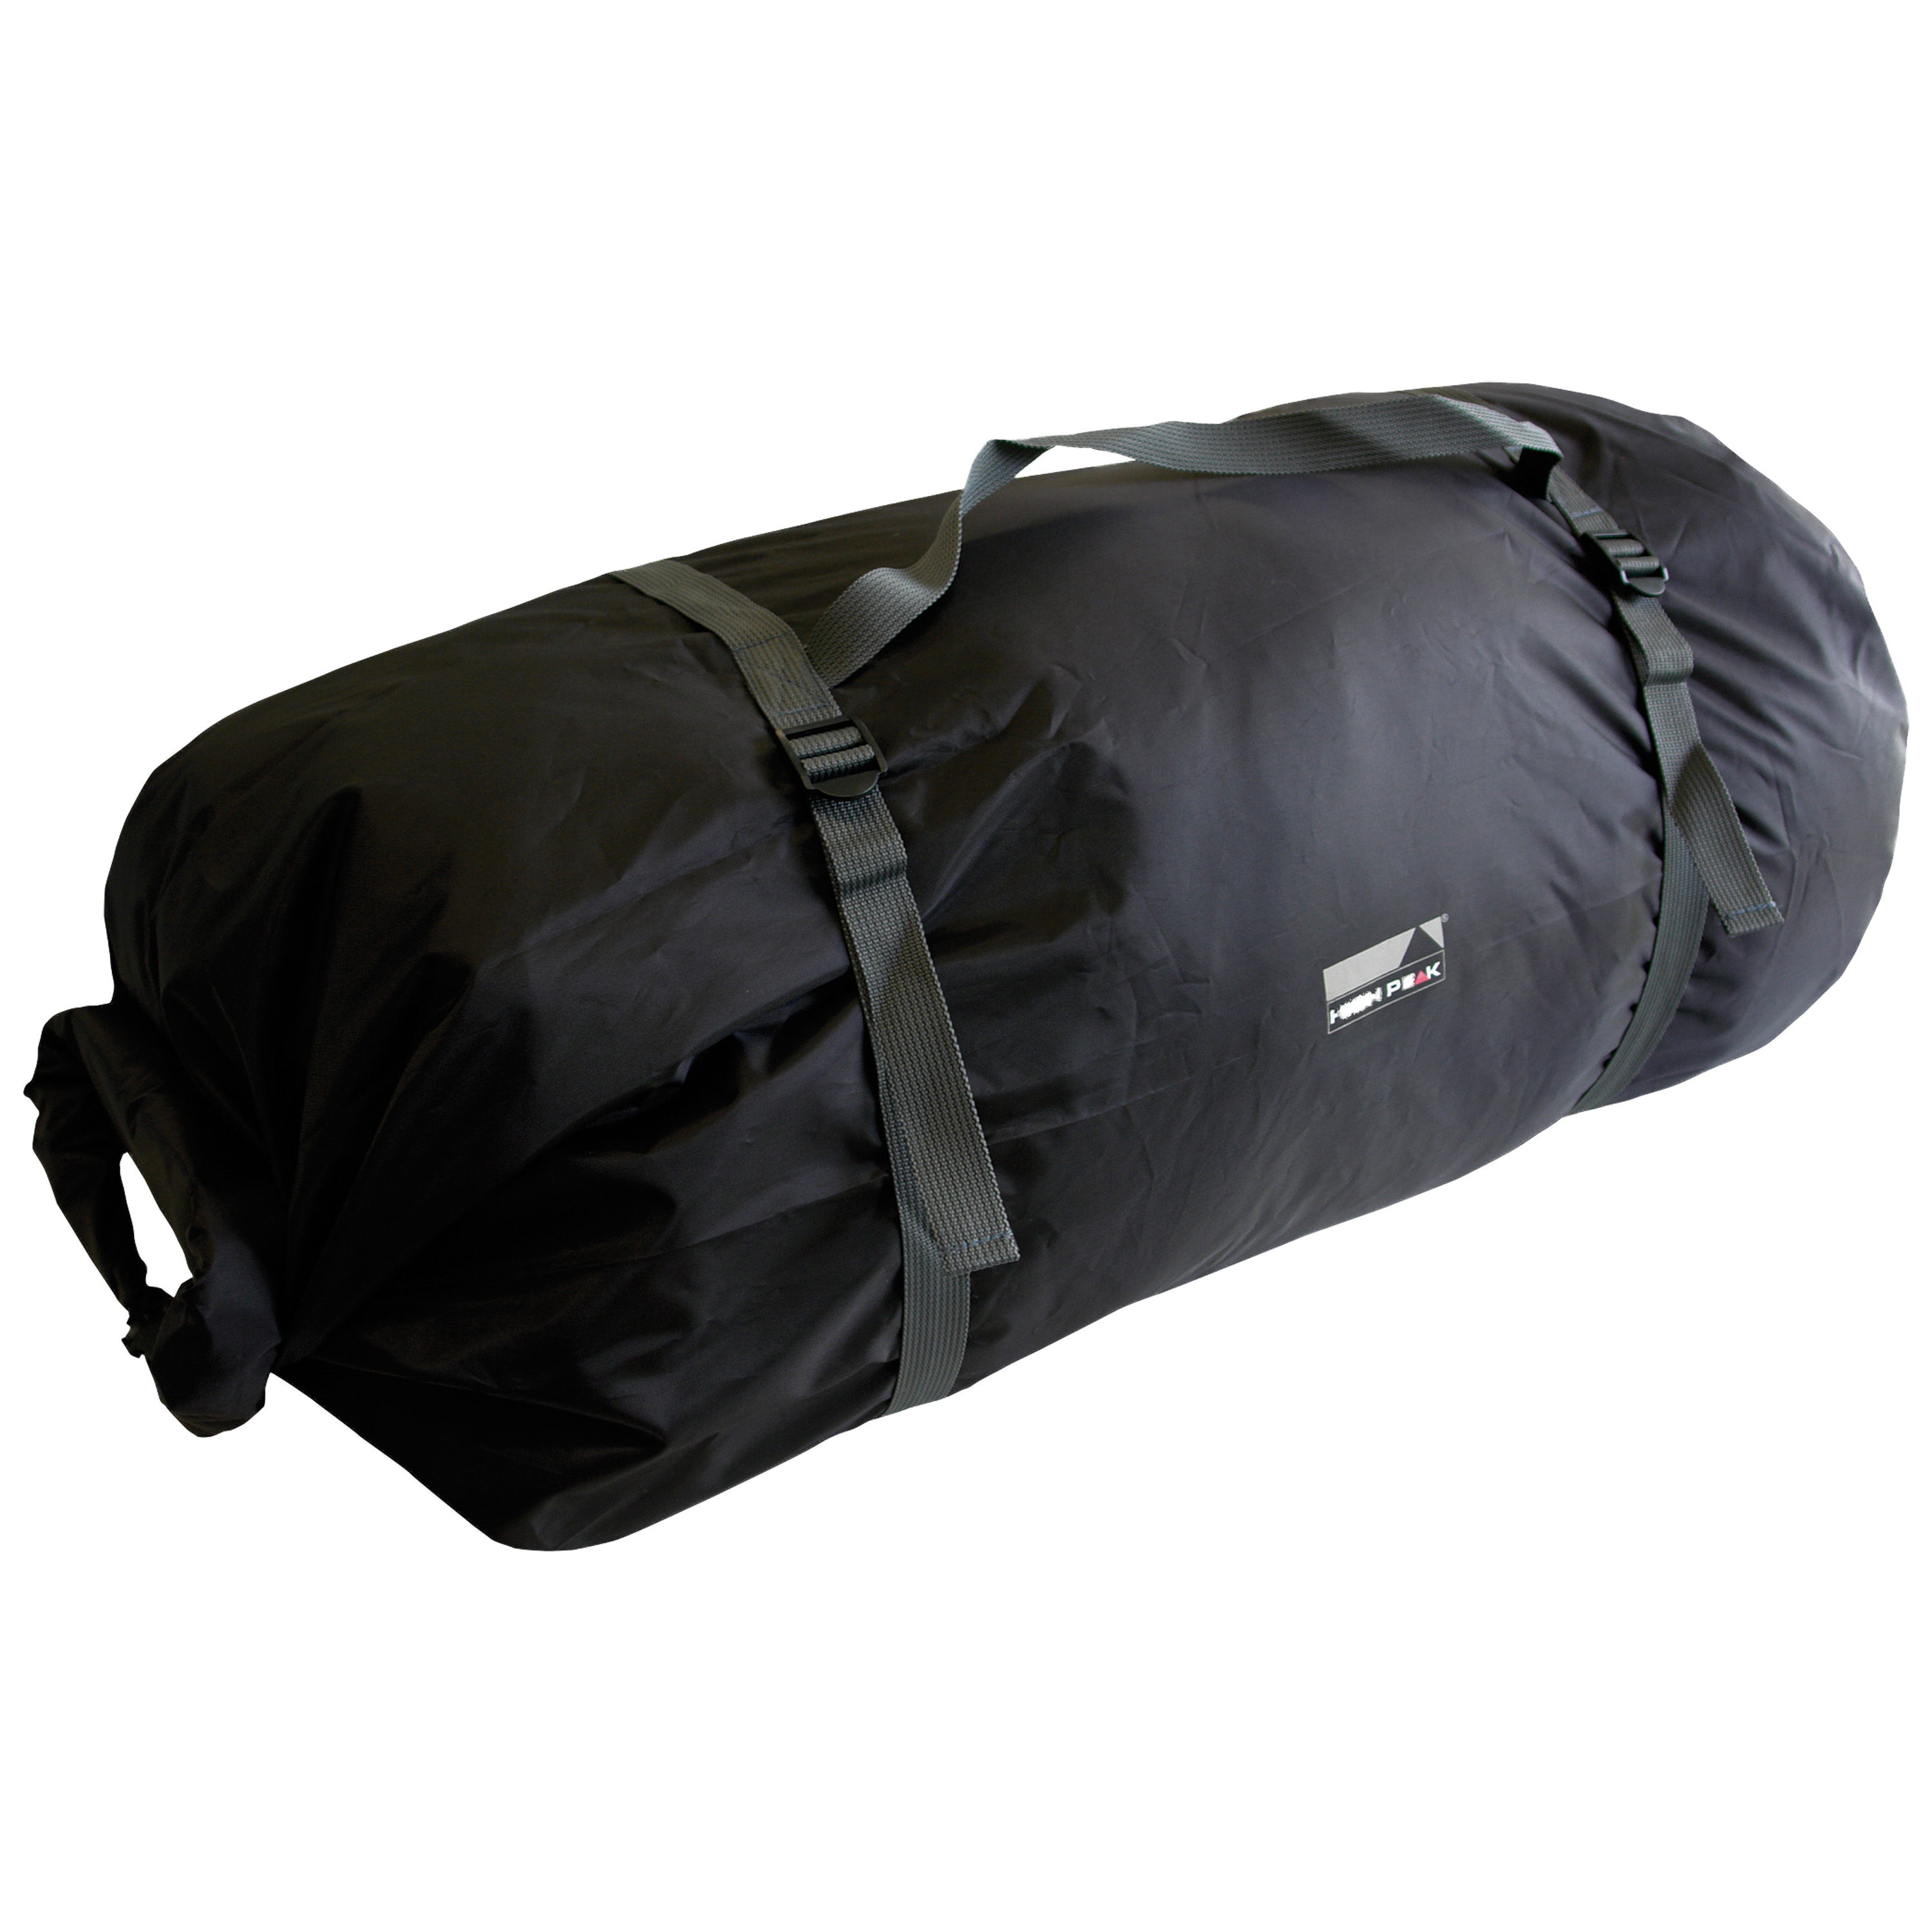 High Peak Tent Roll Pack Sack Large black